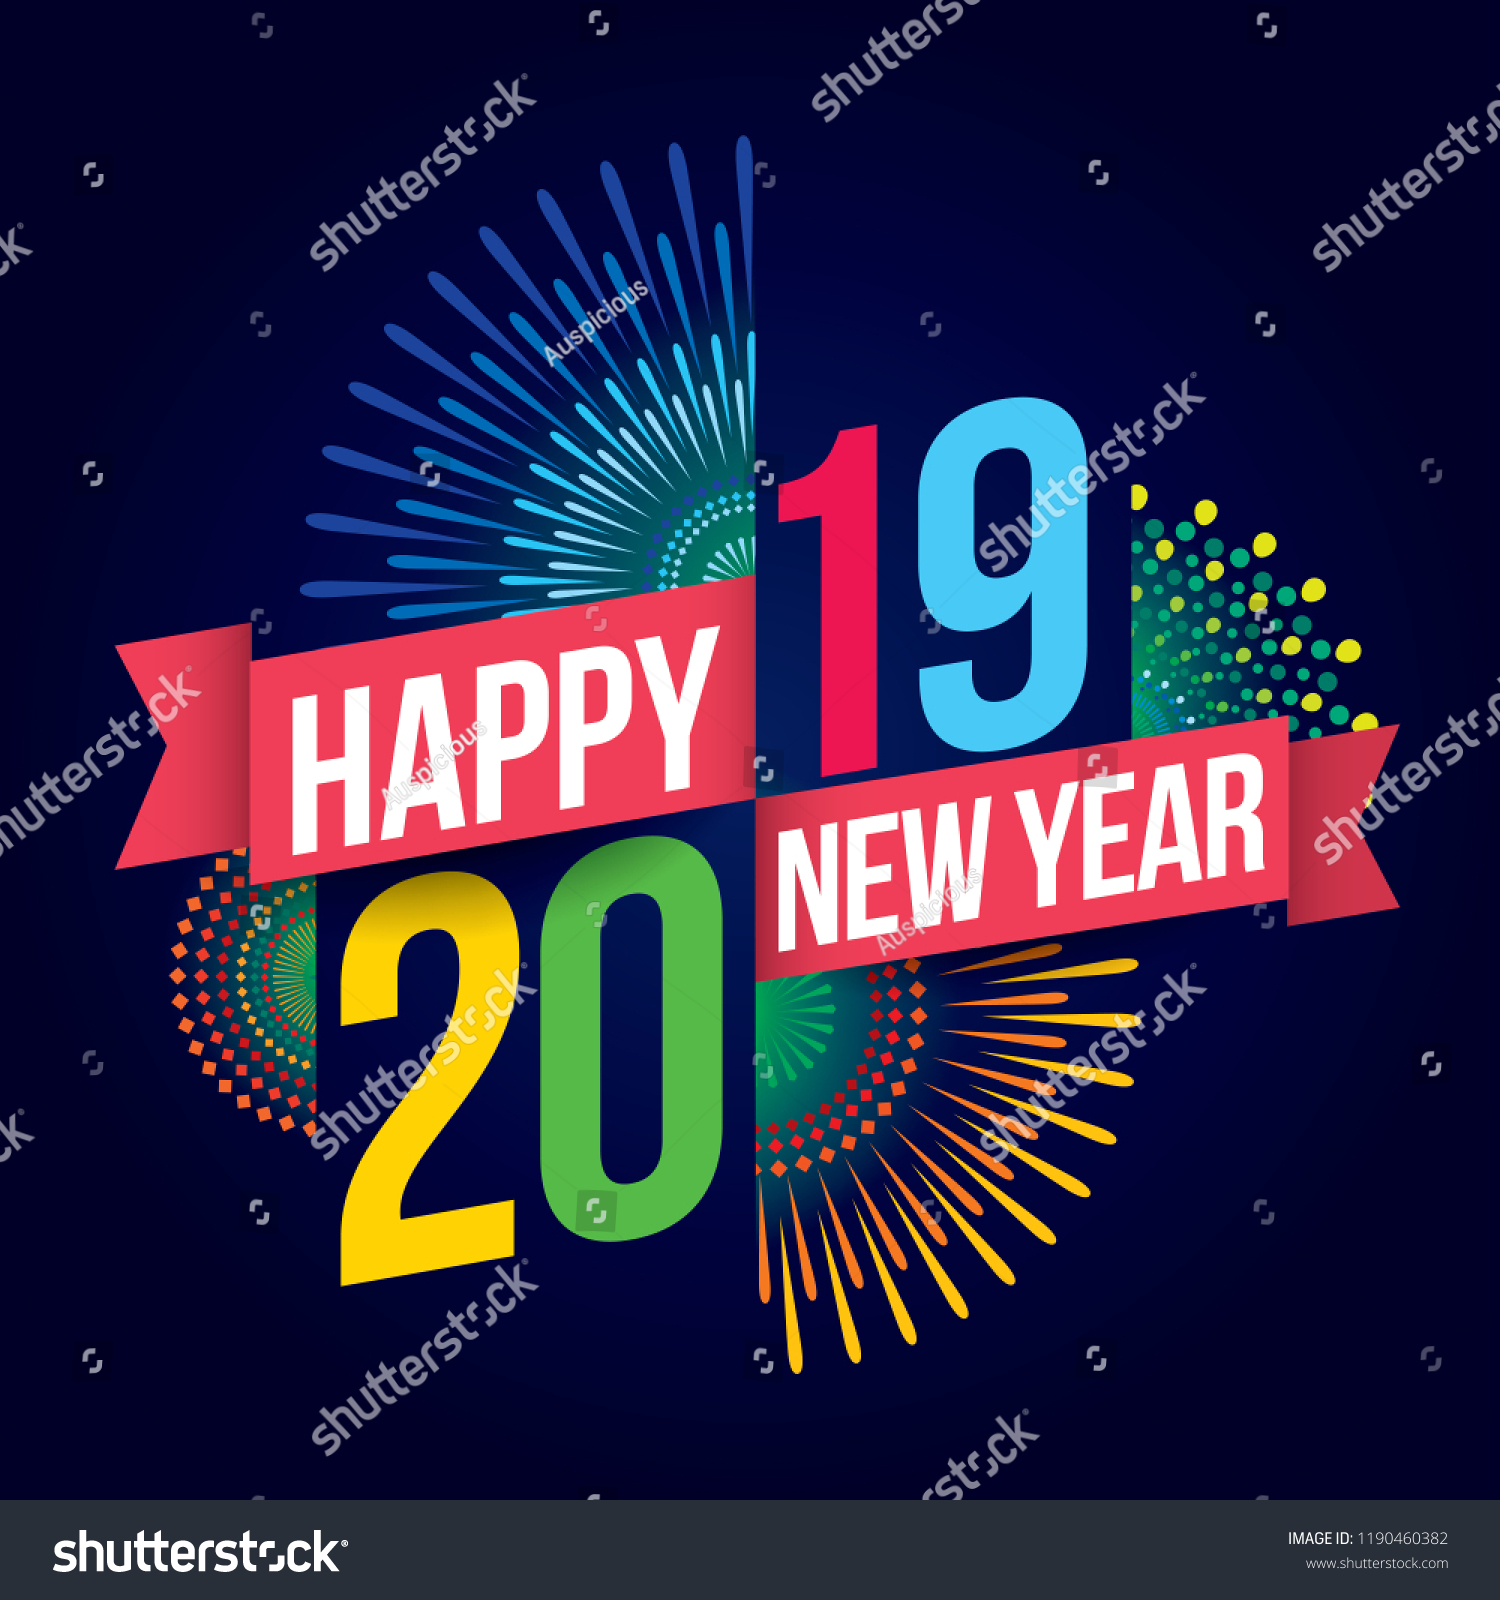 vector illustration of fireworks happy new year 2019 theme